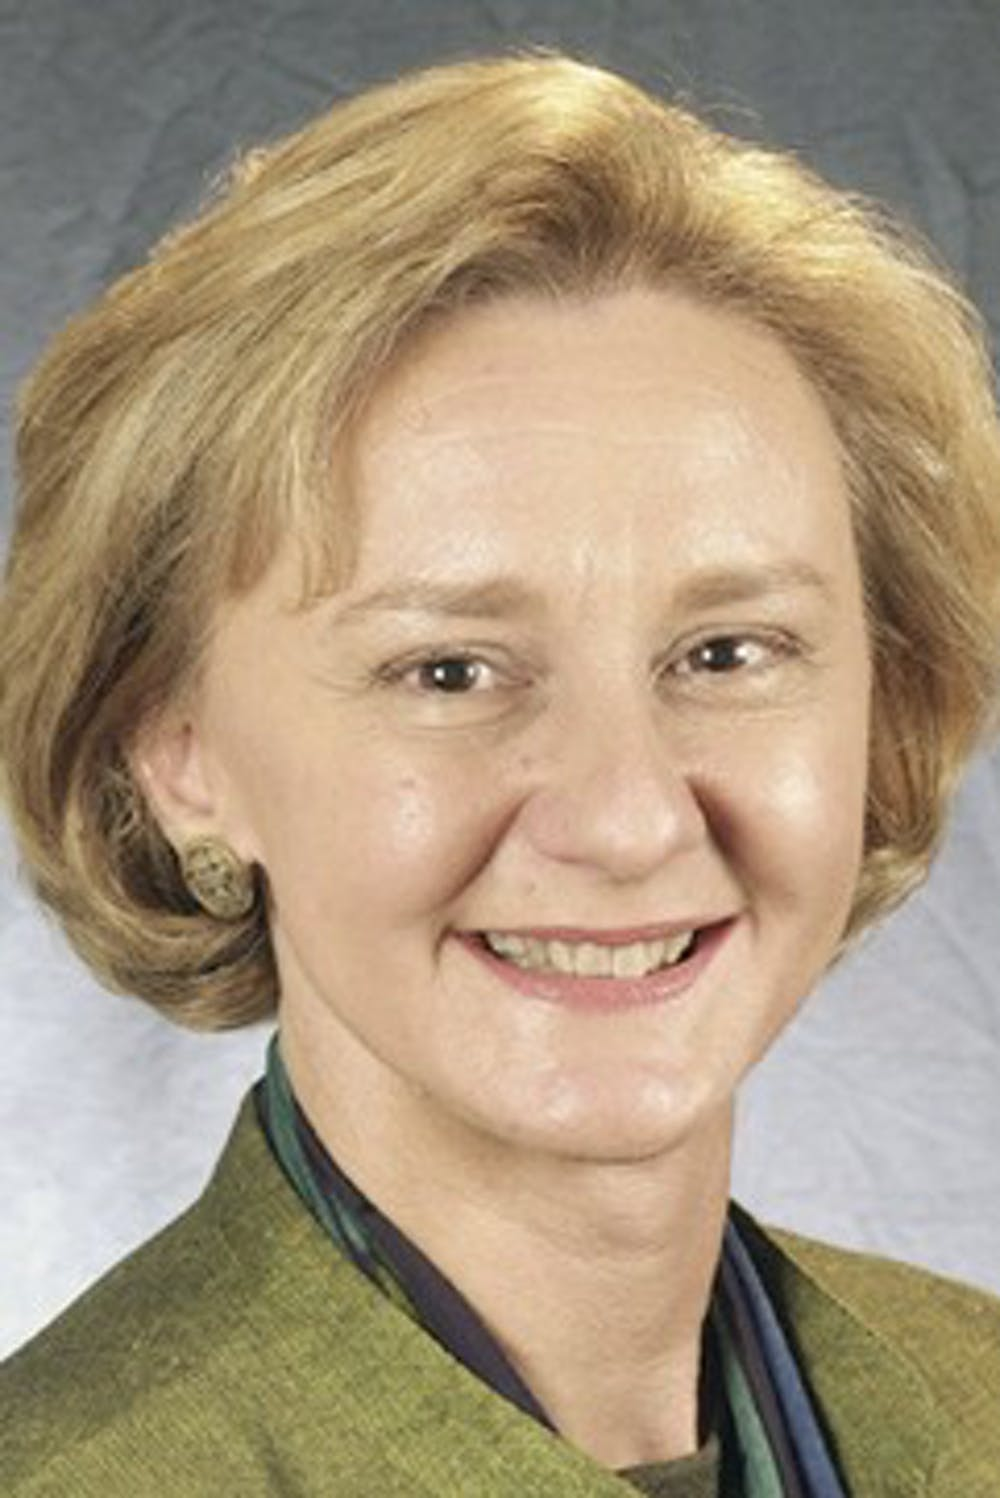 UNC's General Counsel Leslie Strohm to leave for Louisville